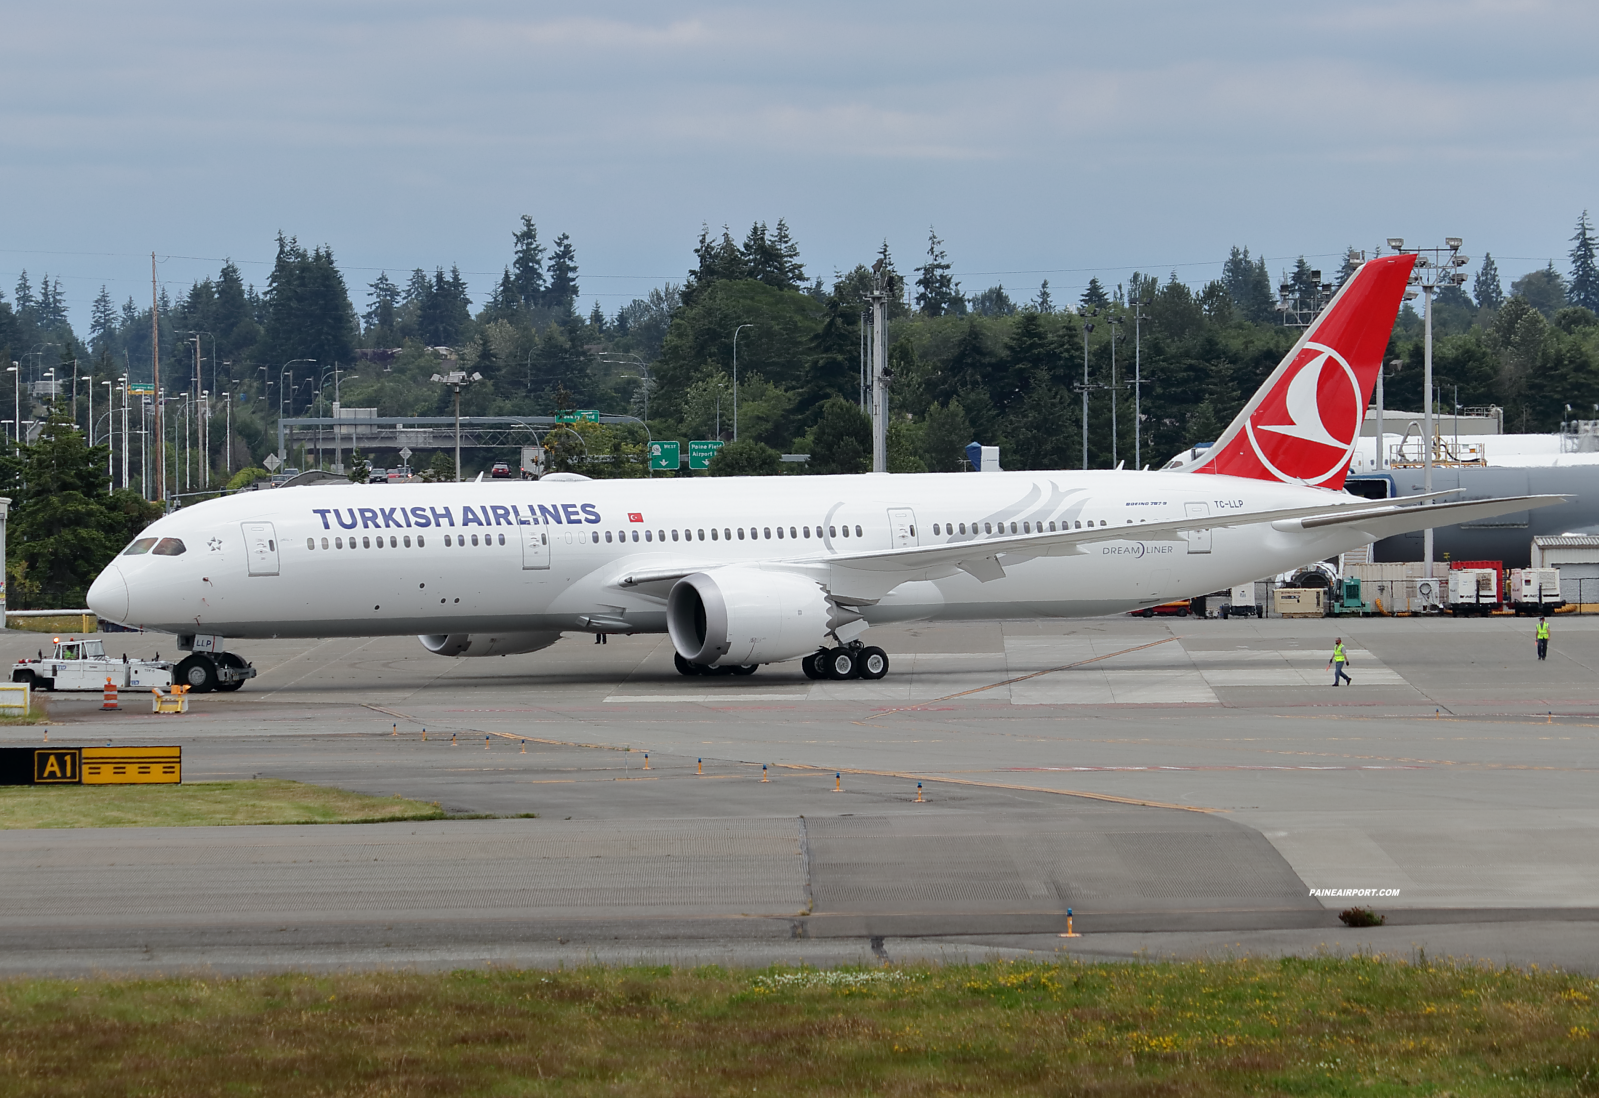 Turkish Airlines 787-9 TC-LLP at KPAE Paine Field